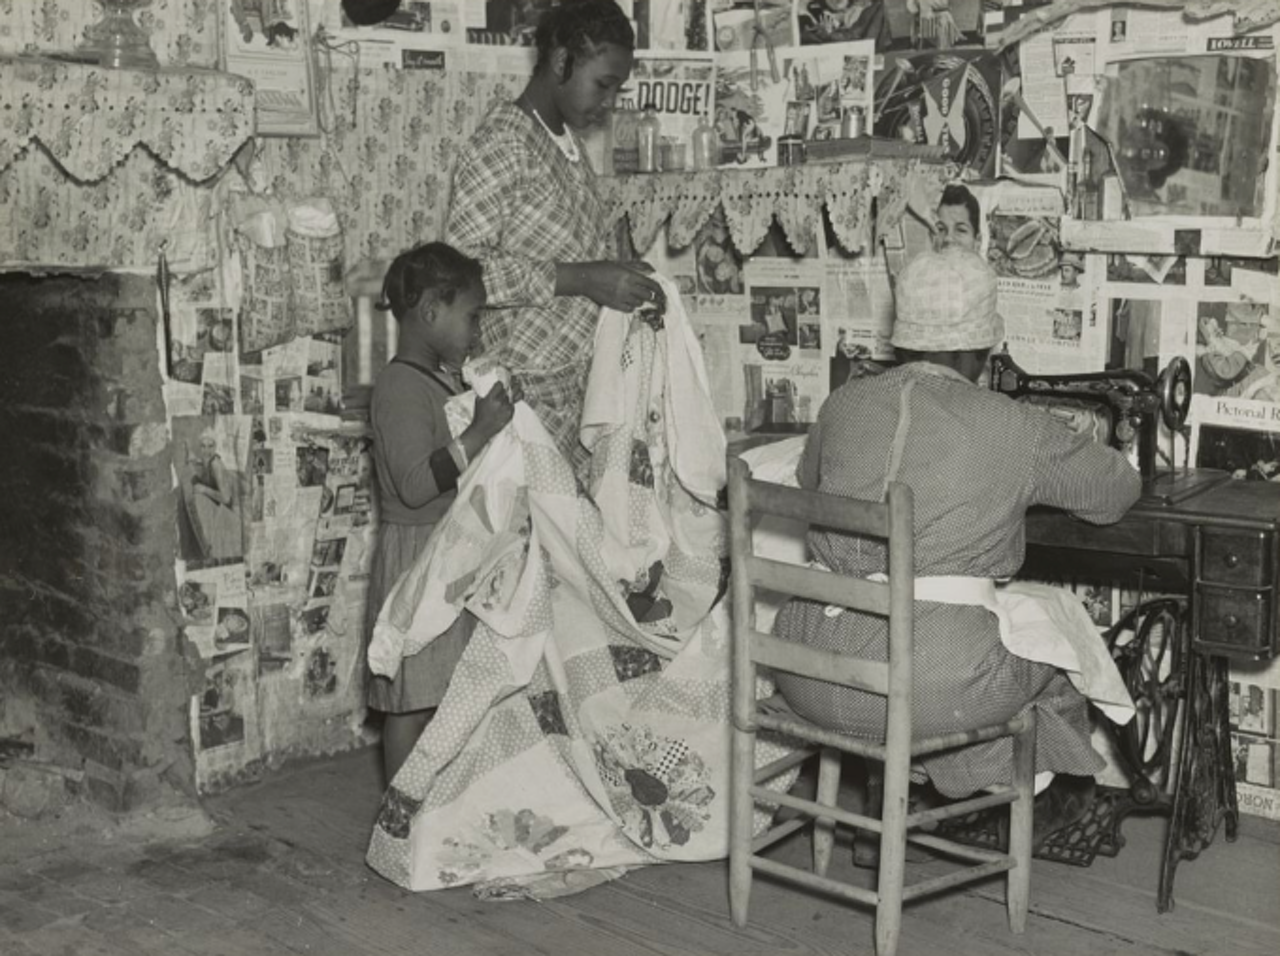 Lucy Mooney making a quilt with her granddaughters in 1937. She once worked as the cook on the Pettway plantation.